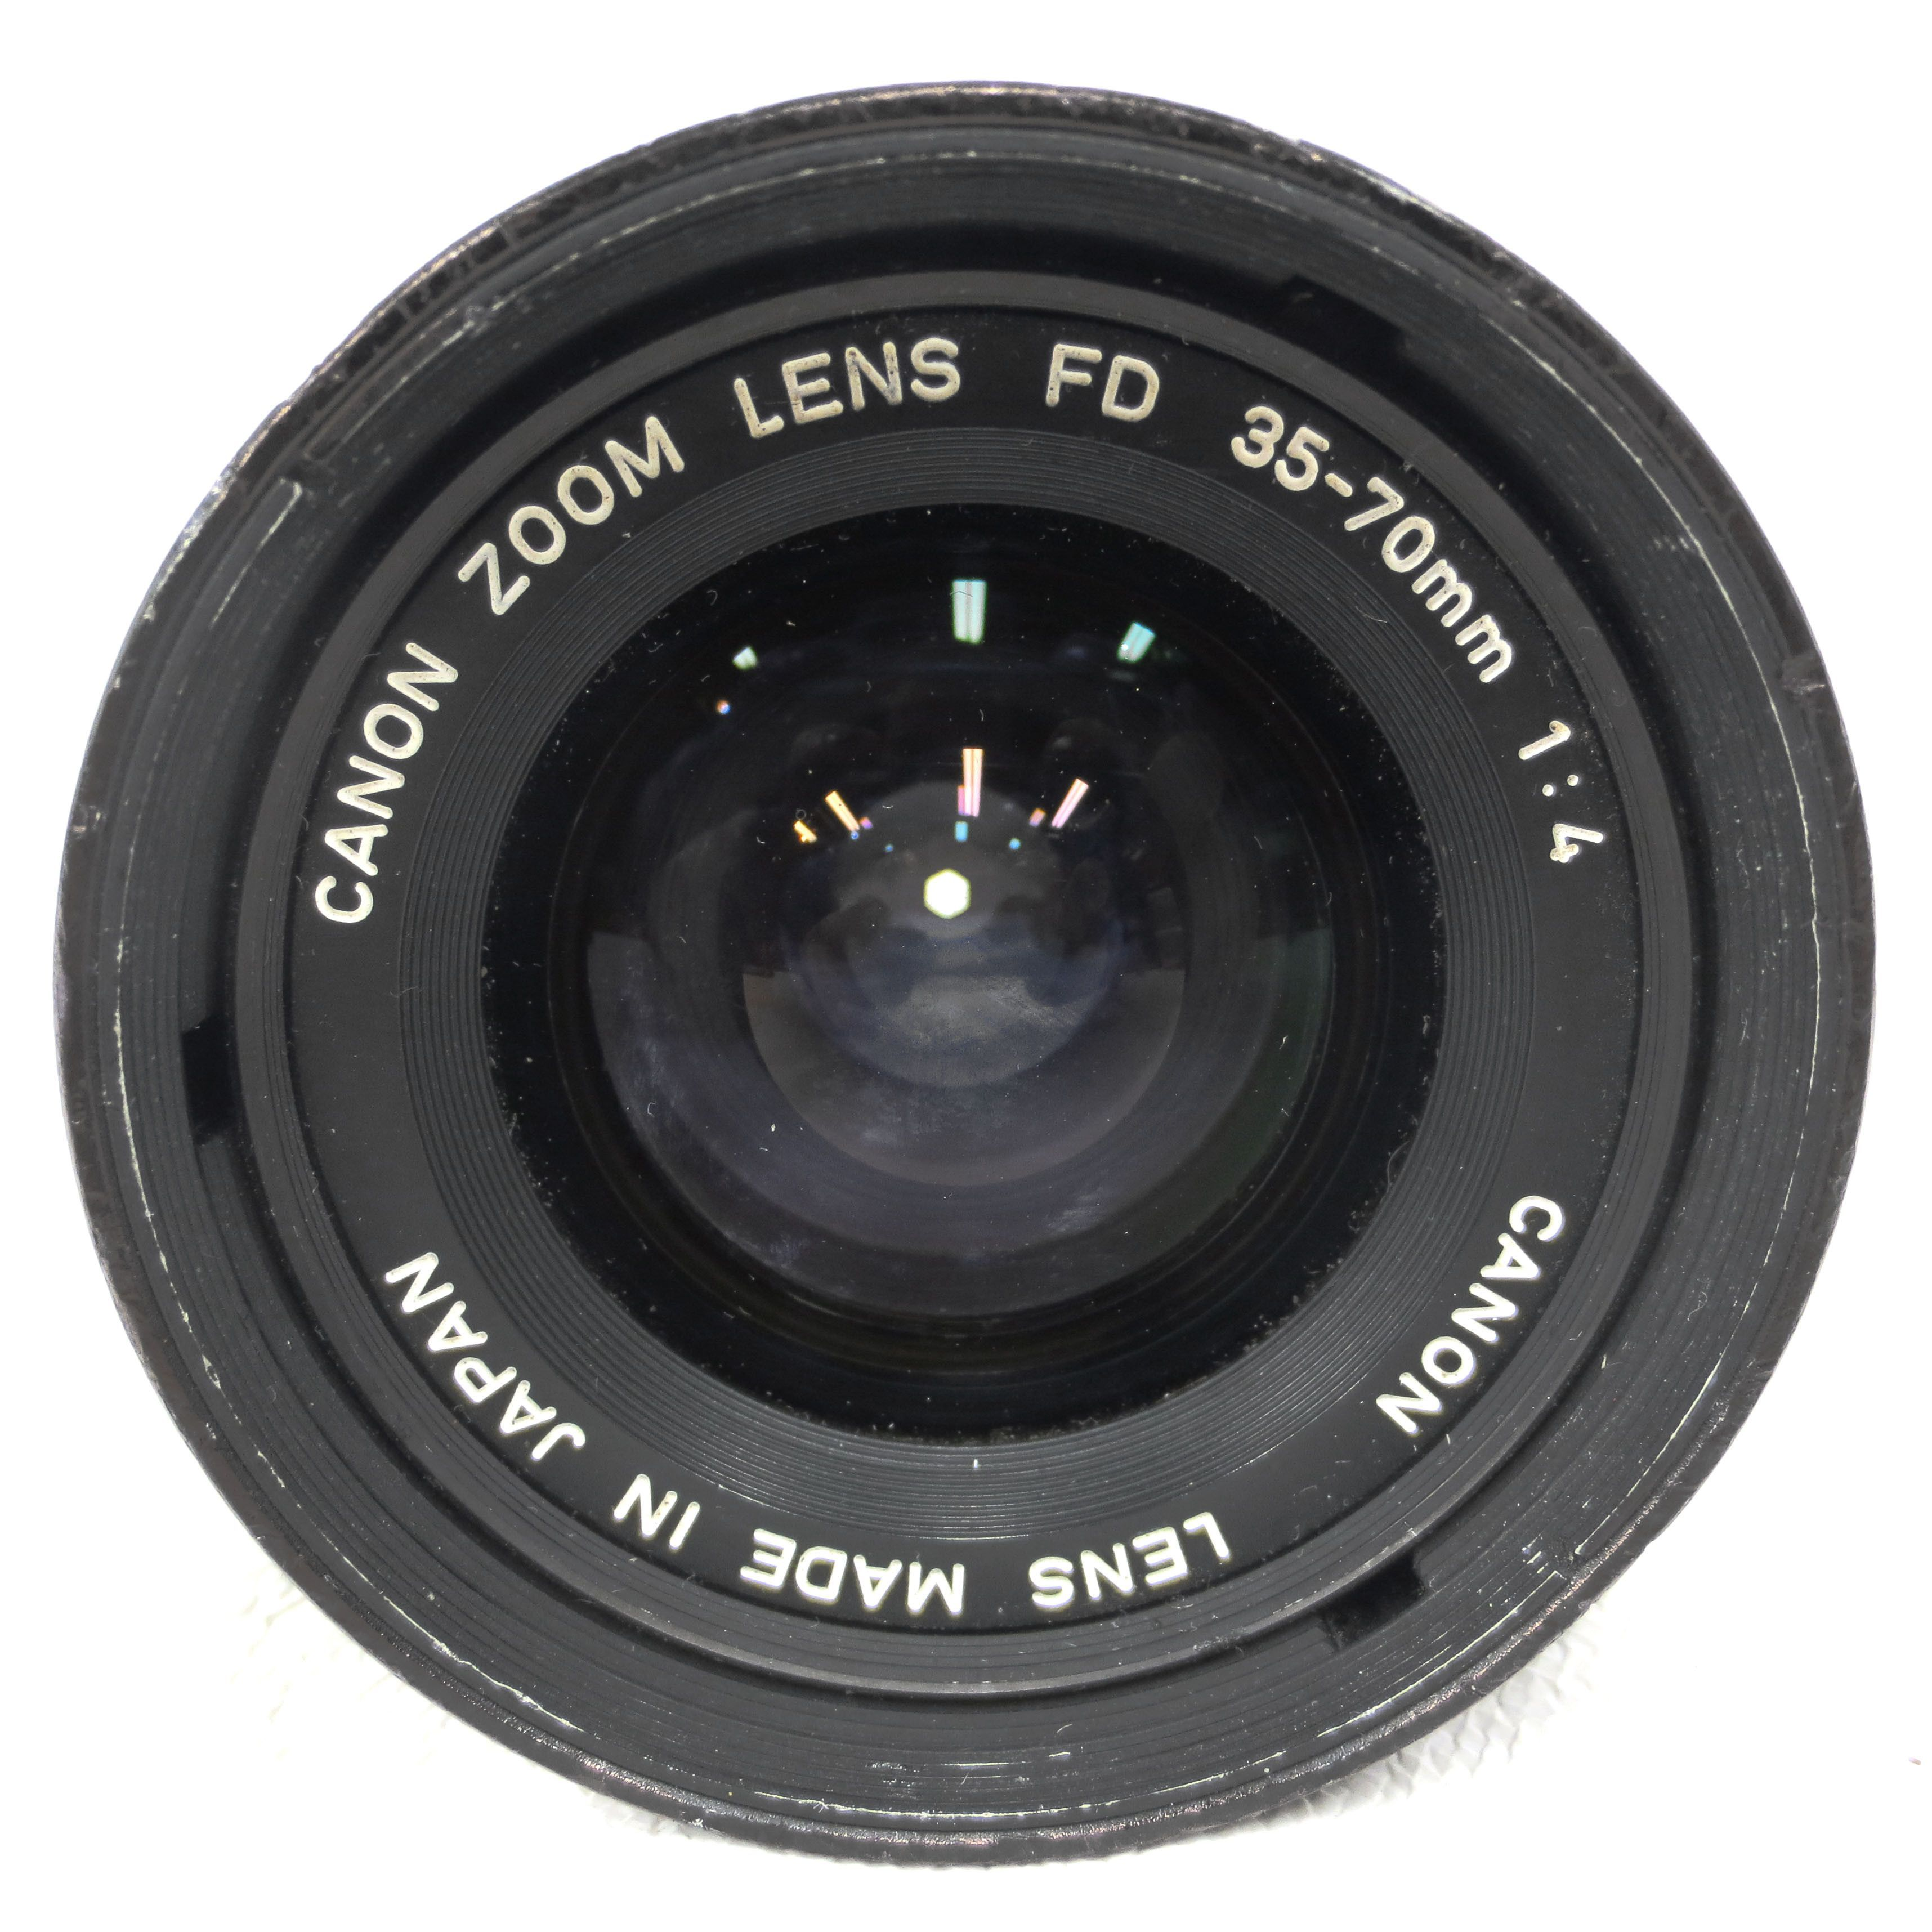 Canon Camera Lens Zoom Fd 35 70 Mm 1 4 Made In Japan Camera Lenses Canon Camera Lens Best Digital Camera